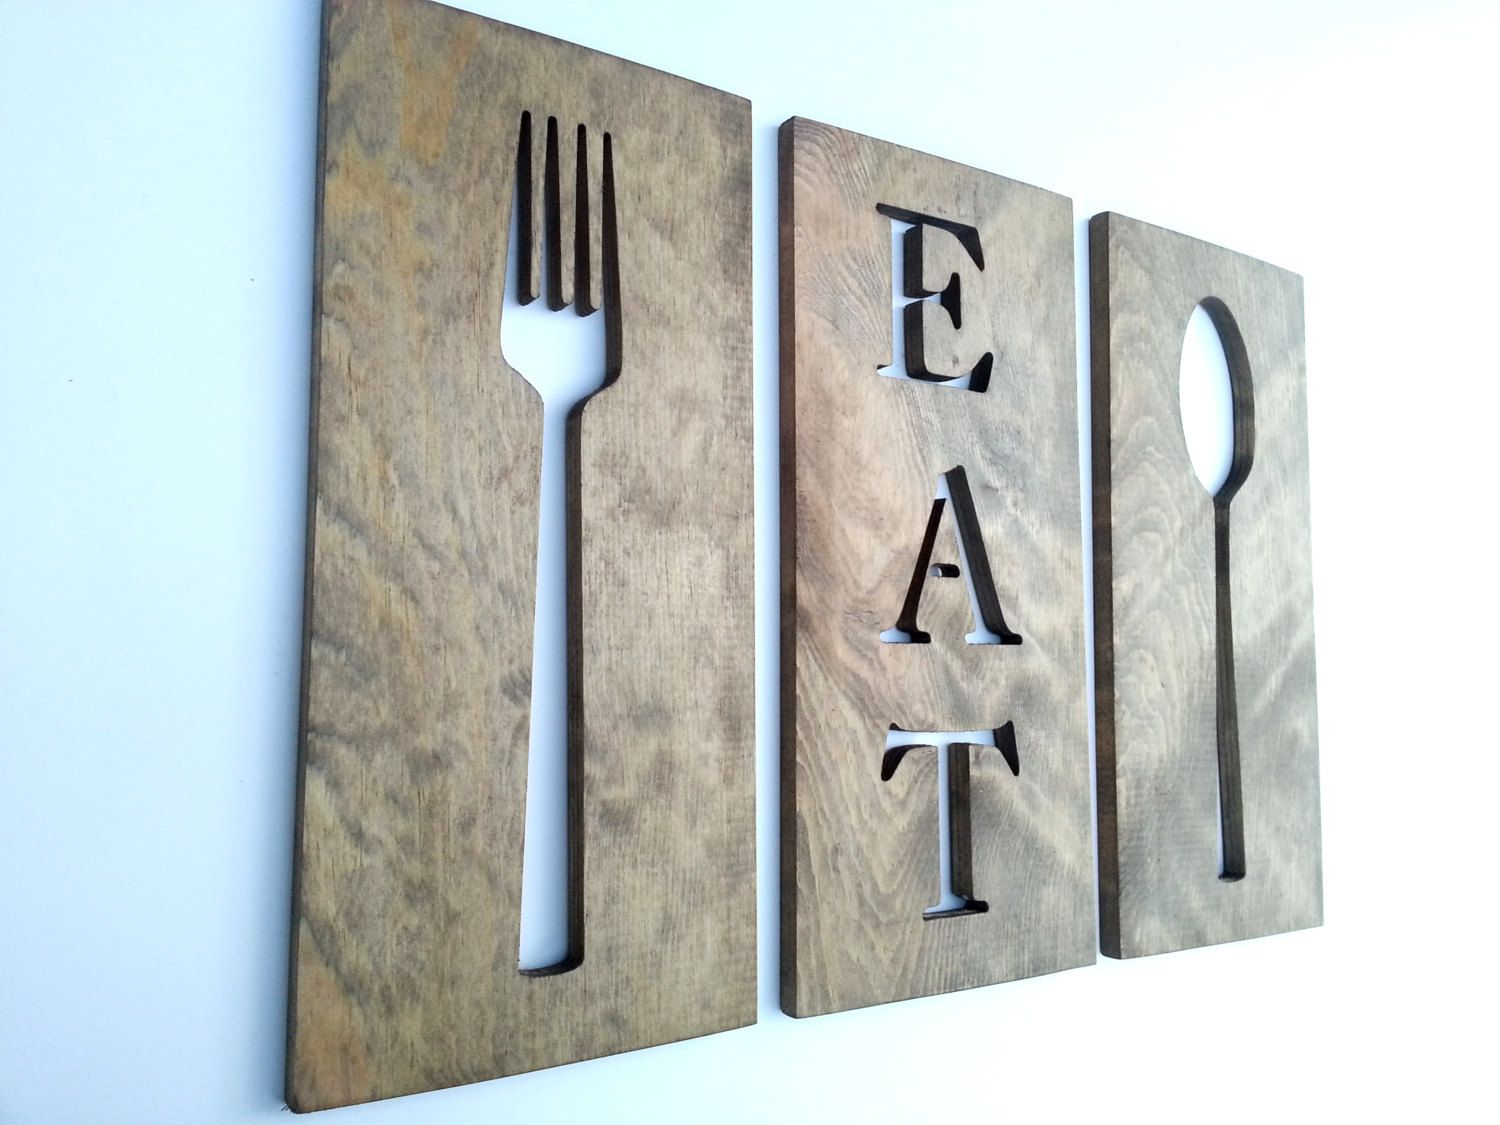 Spoon And Fork Wall Decor best 25+ fork spoon wall decor ideas on pinterest | chalkboard for